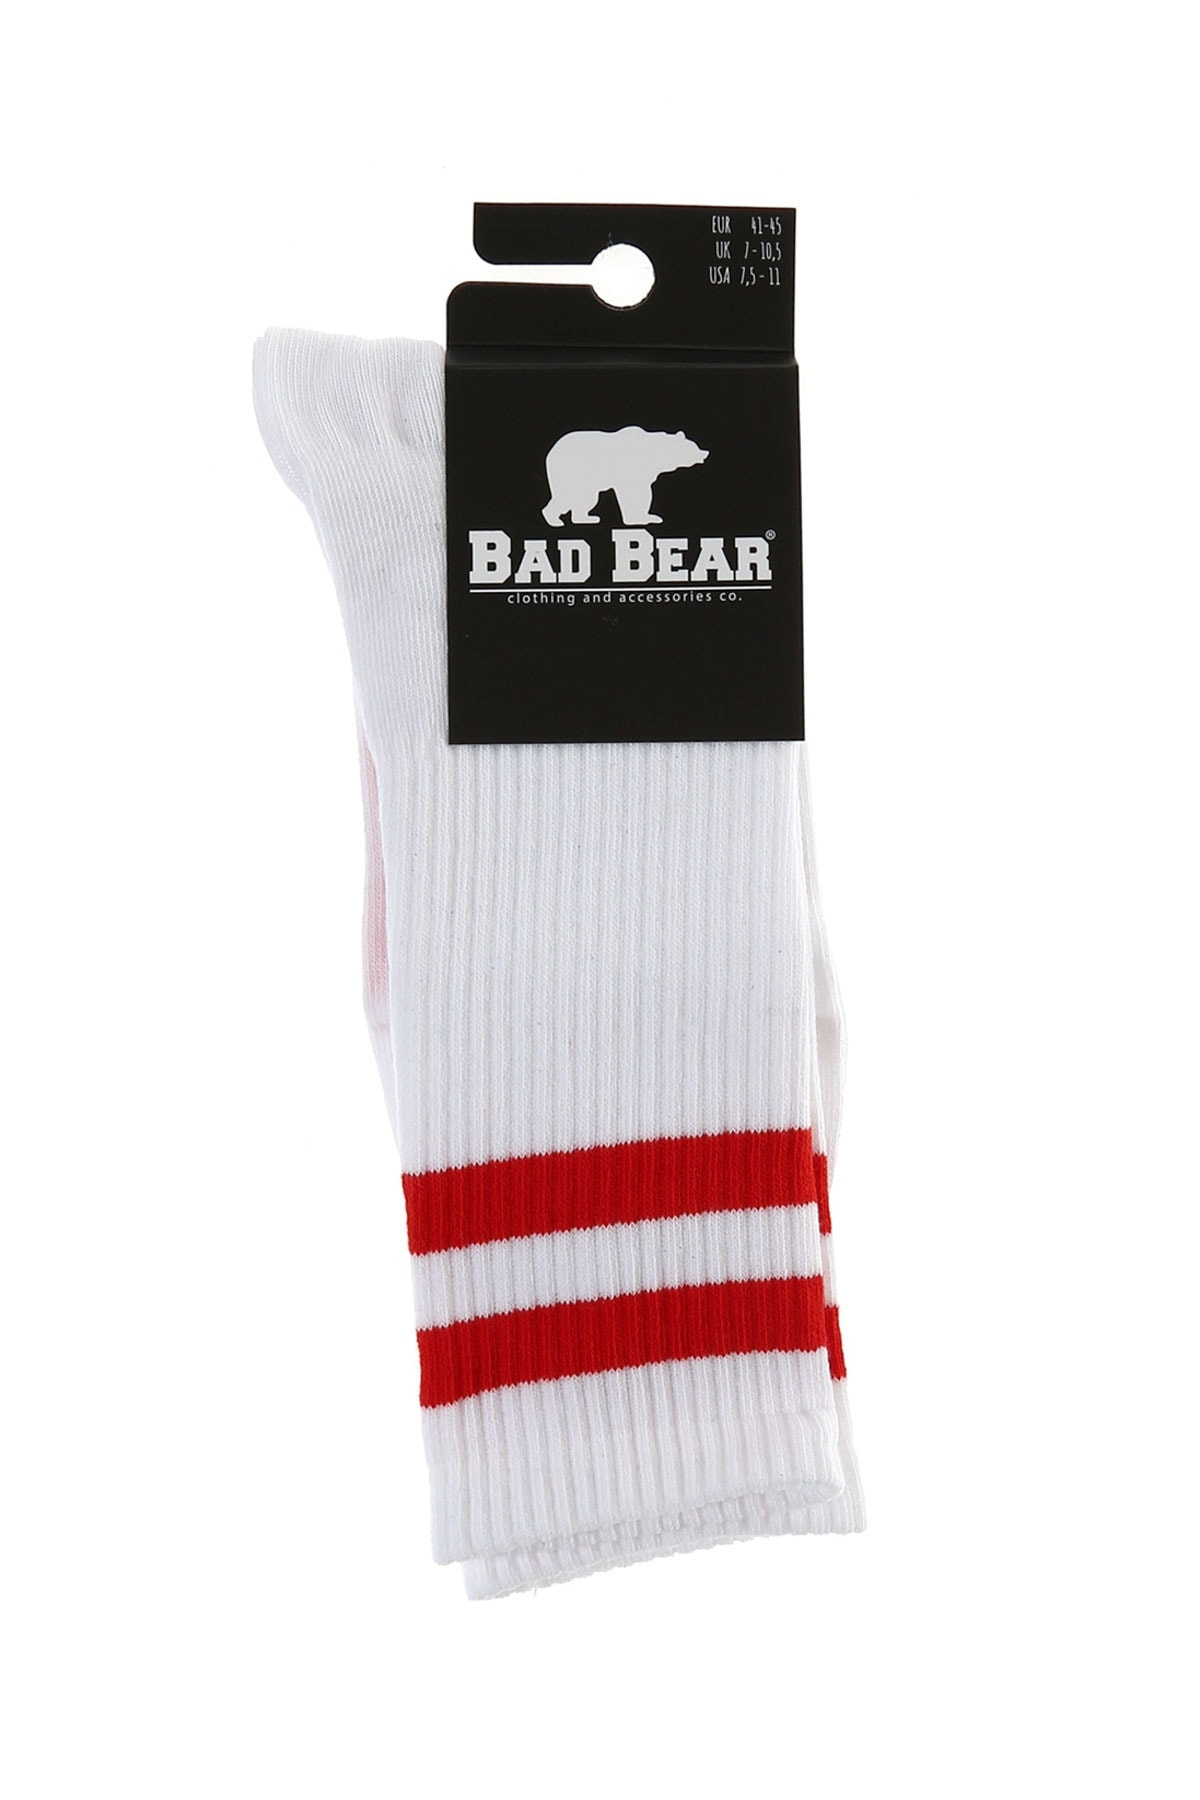 Bad Bear BENCH TALL WHITE-RED 1